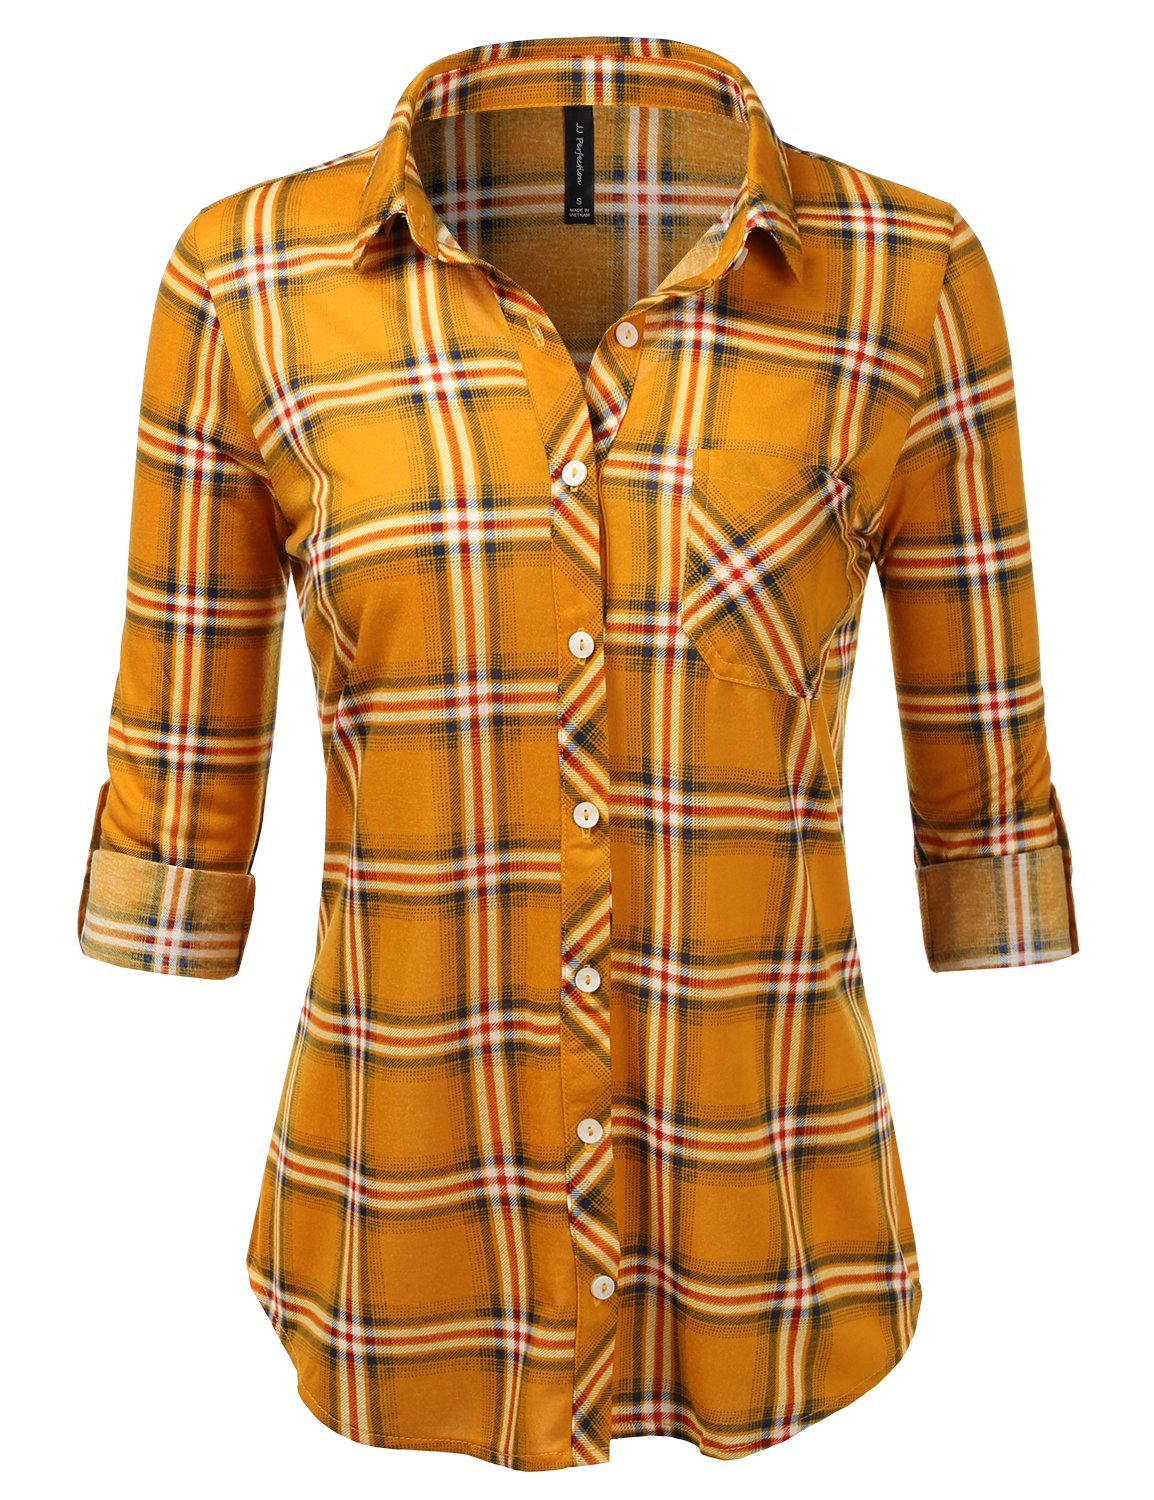 JJ Perfection Womens Long Sleeve Collared Button Down Plaid Flannel Blouse Shirt MUSTARDNAVY 2XL